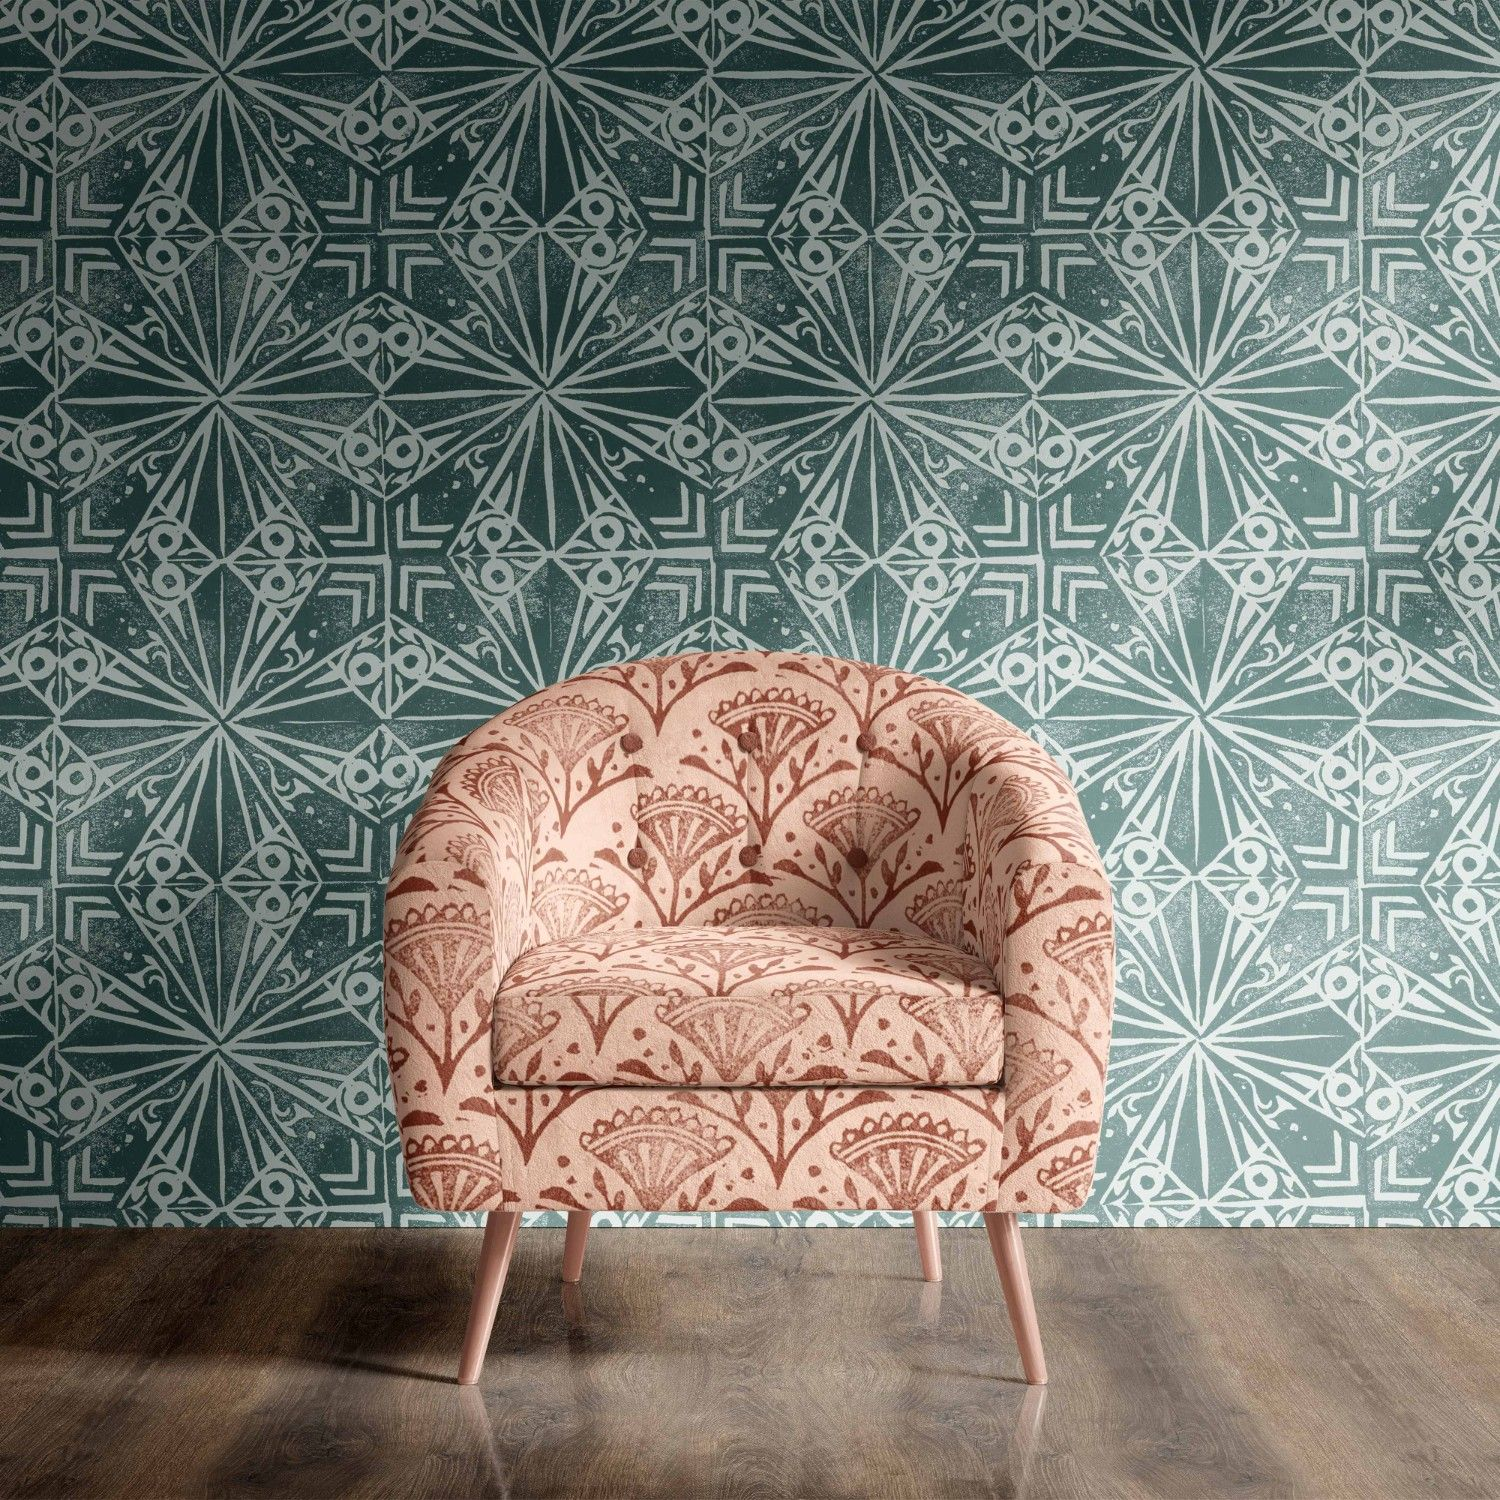 printers block concept wallpaper upholstery